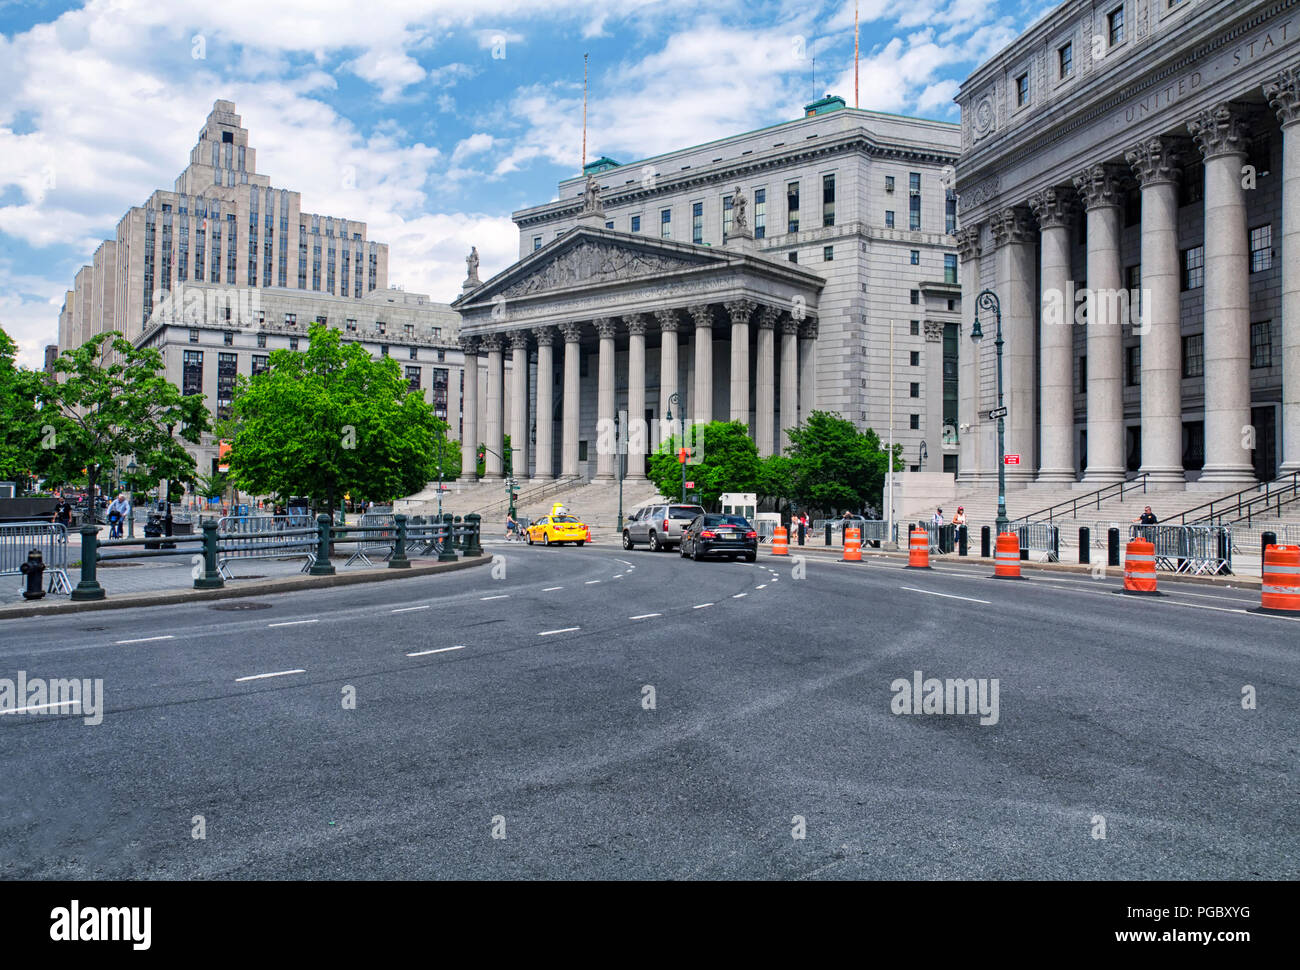 June 10, 2017.  New York City, New York.  The streets in front of the New York Federal and state court buildings in lower Manhattan New York City. - Stock Image